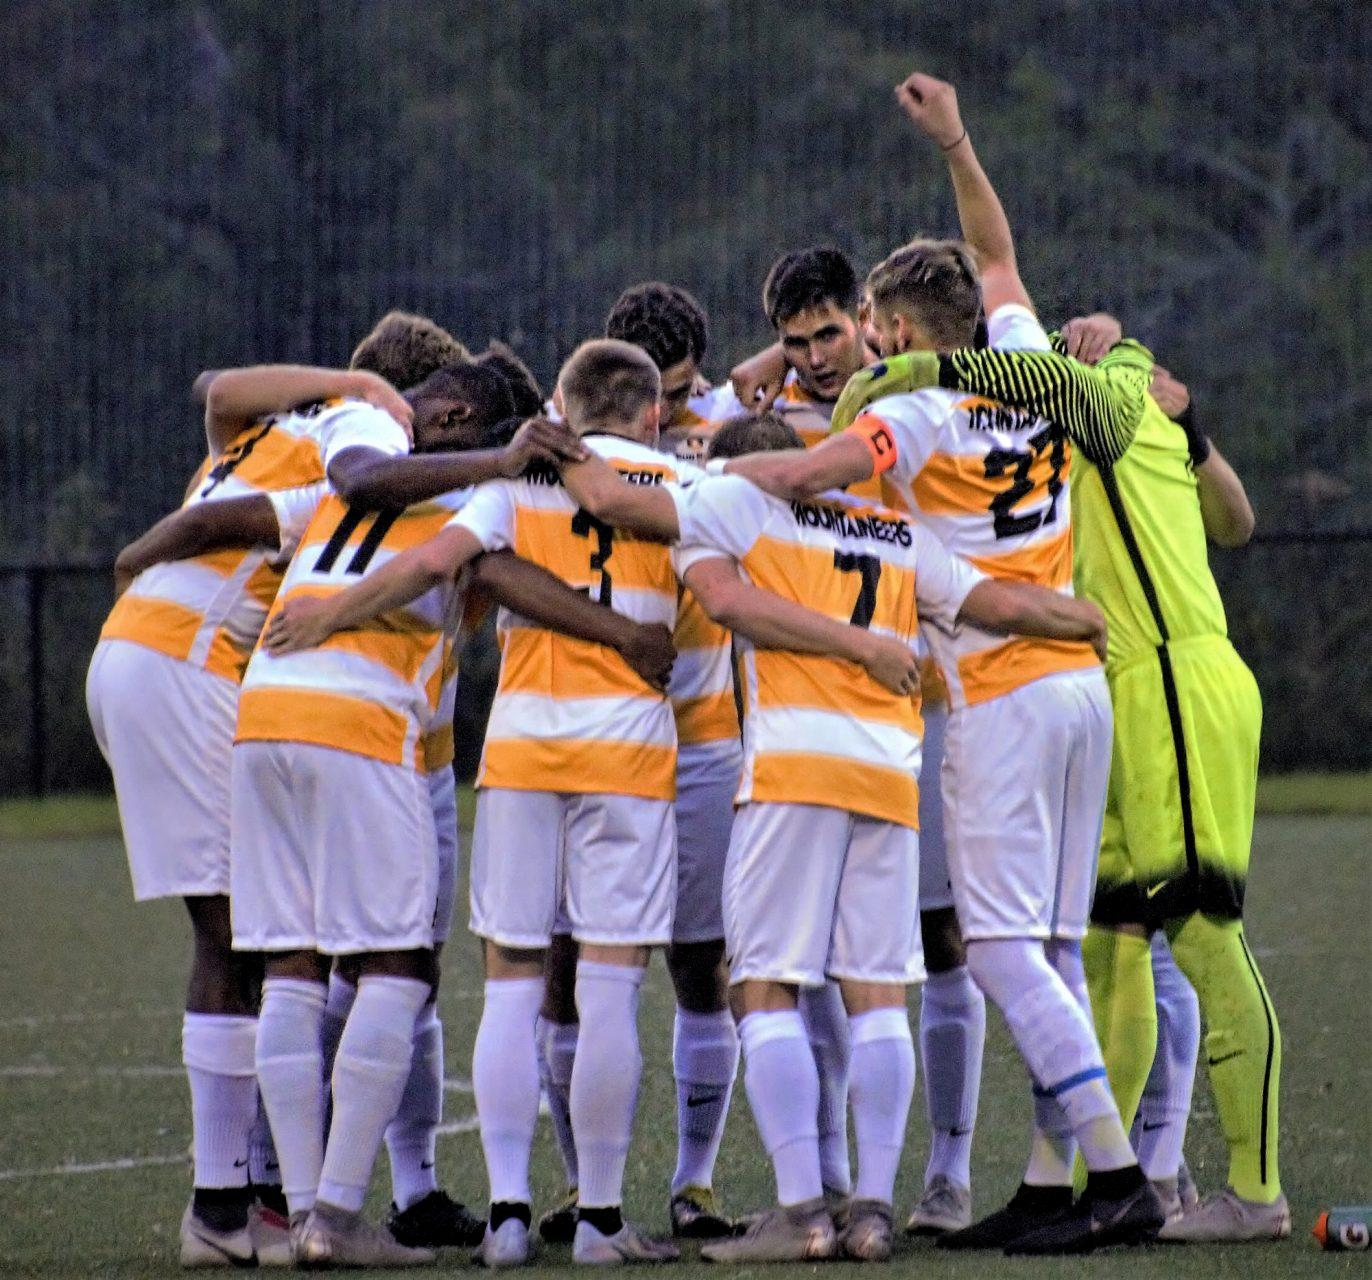 The App State men's soccer team huddles together during a game against Georgia State in 2018. Men's soccer, along with men's tennis and men's indoor track and field, have been canceled, athletic director Doug Gillin announced Tuesday.